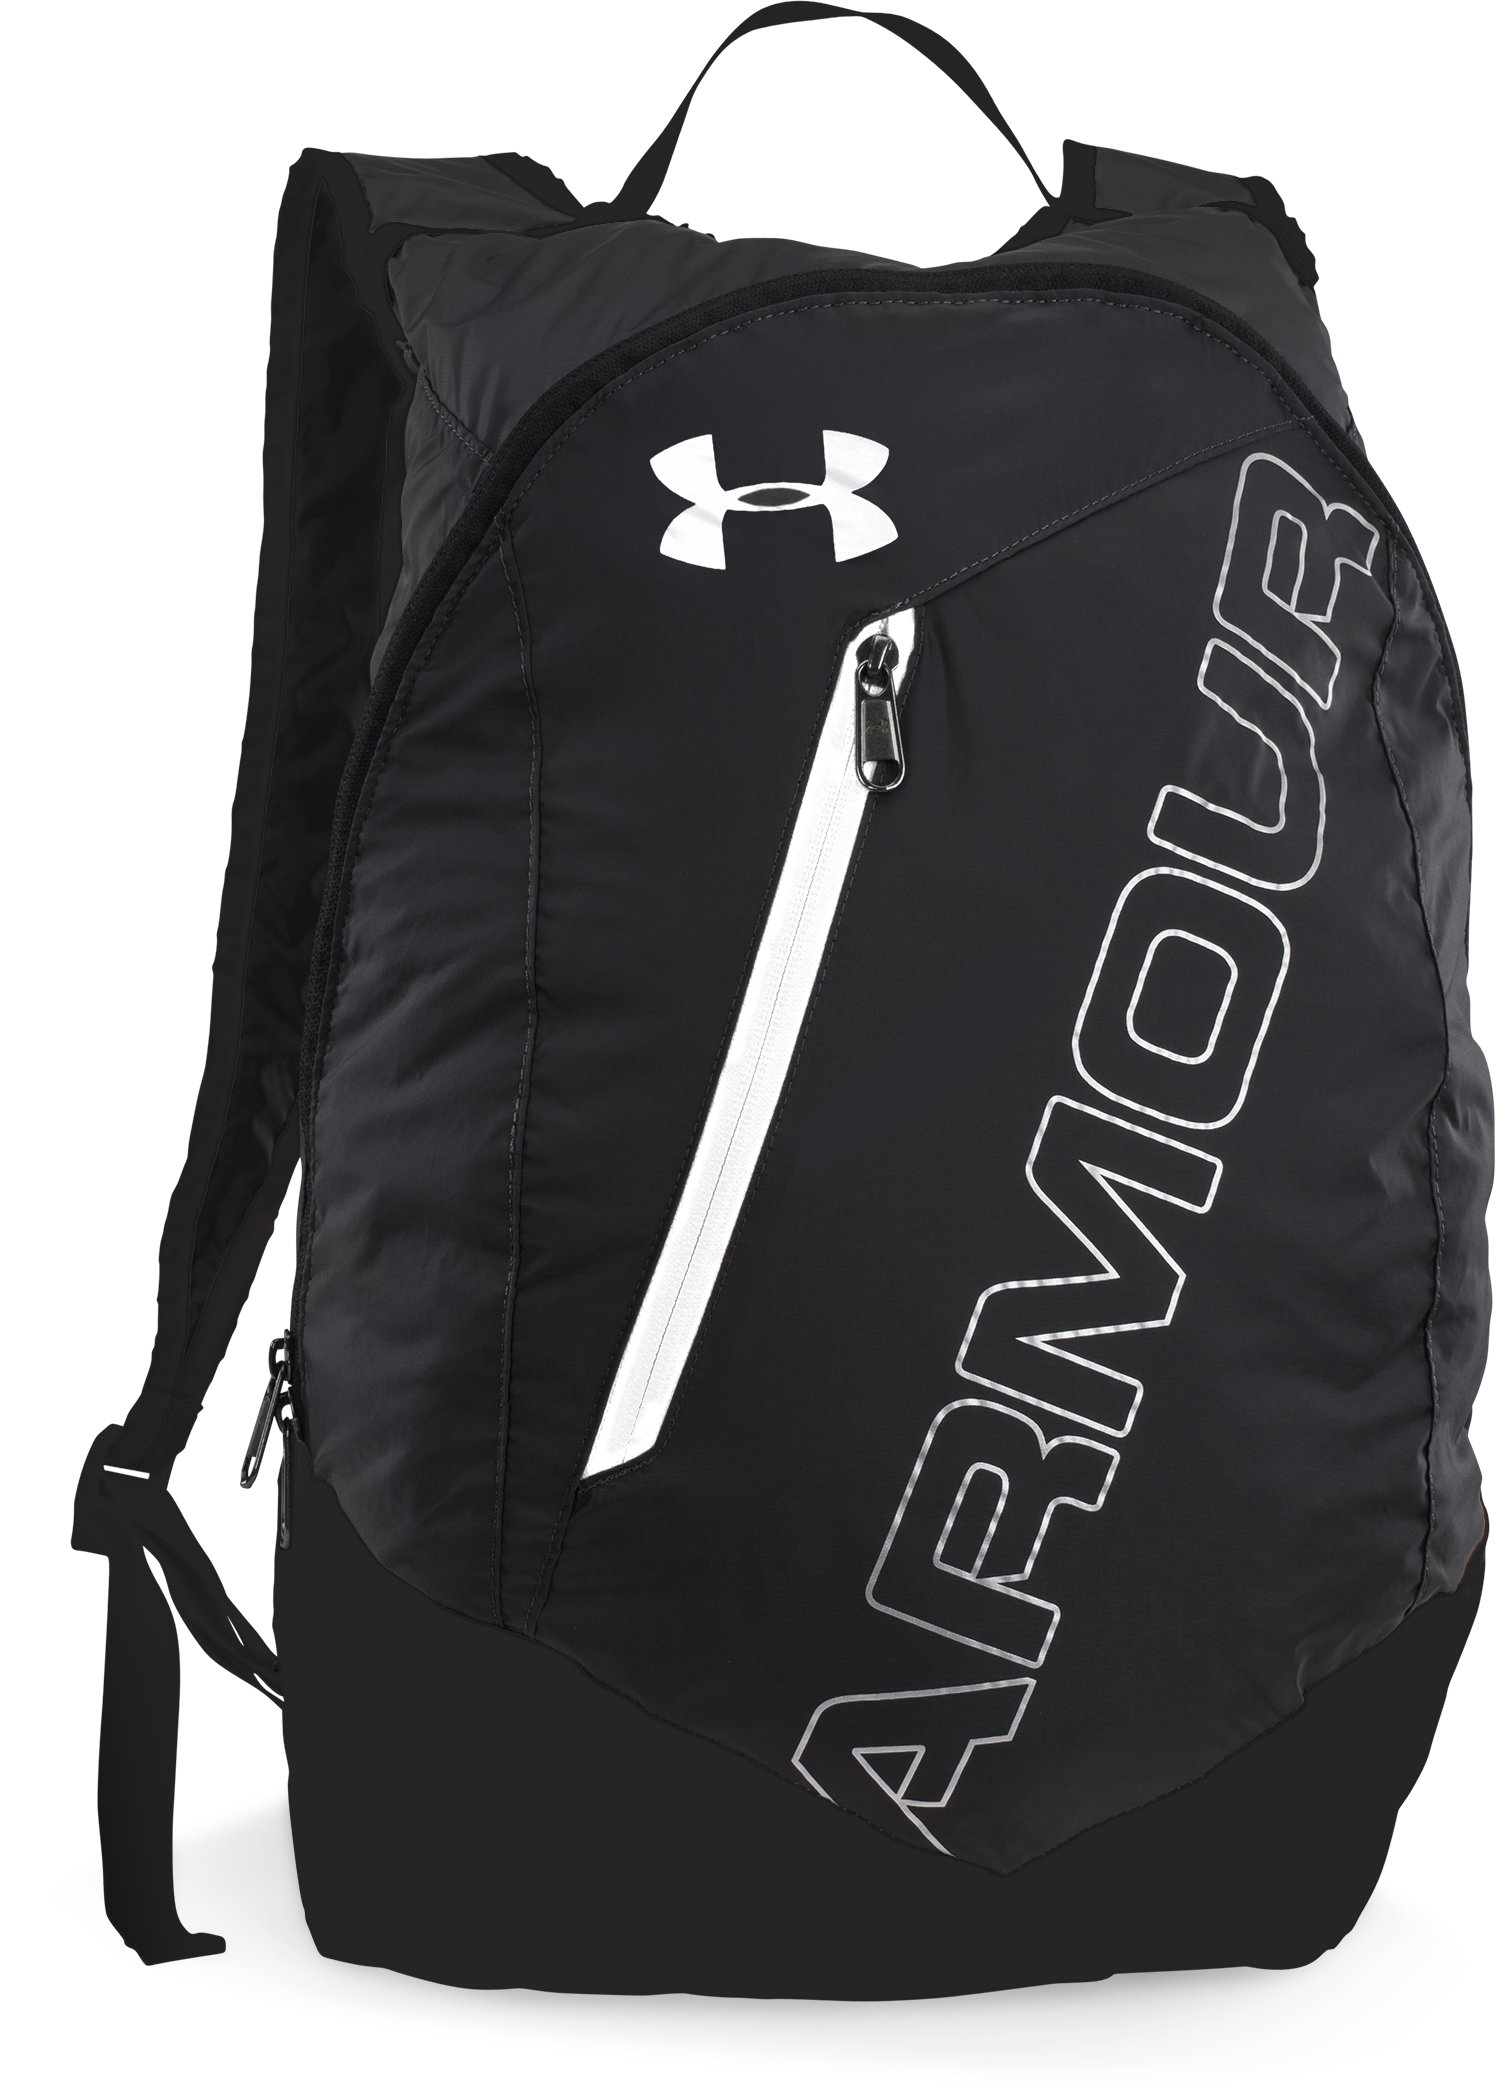 UA Packable, Black